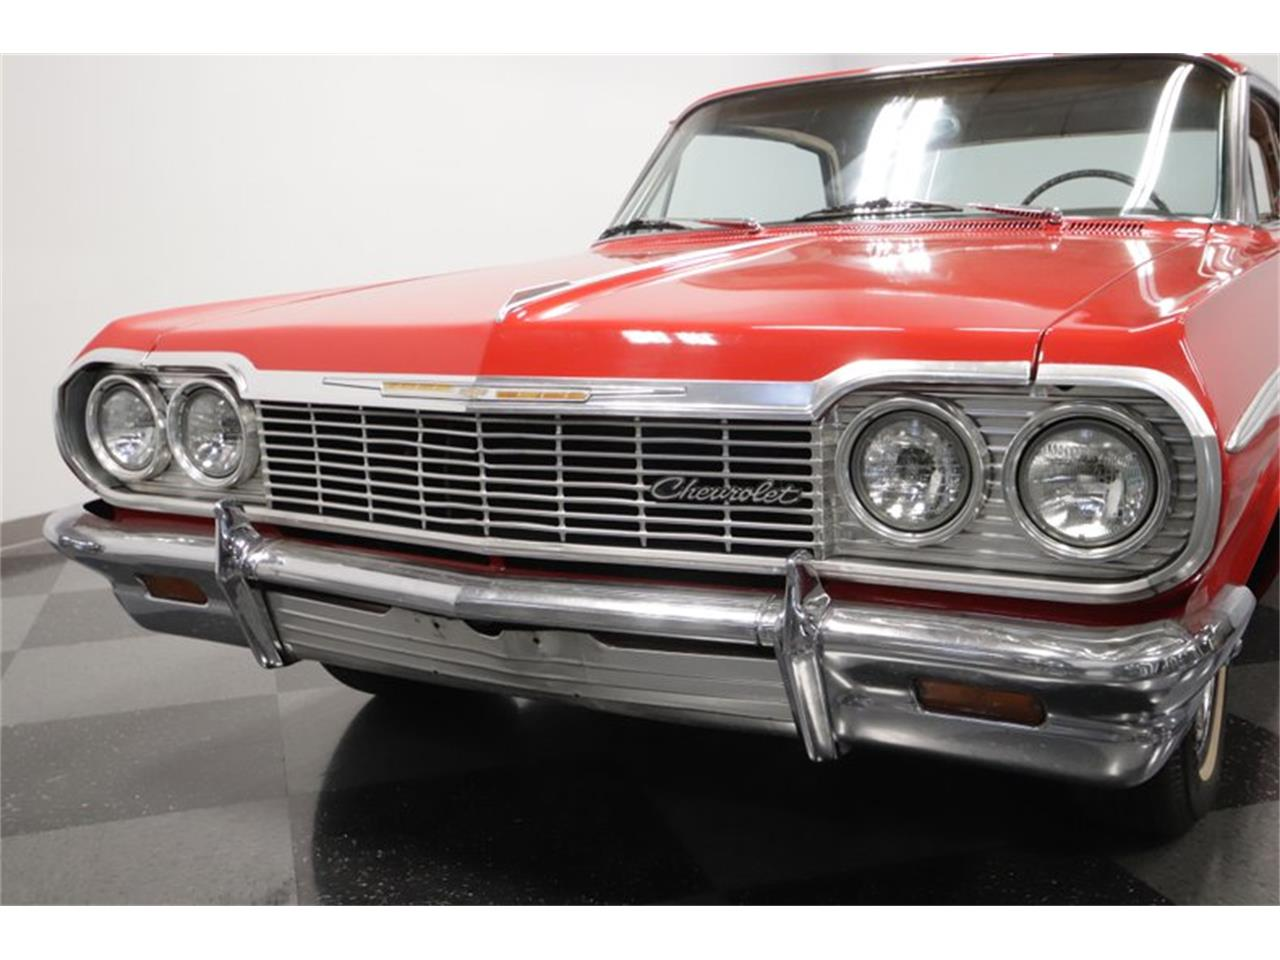 1964 Chevrolet Impala (CC-1246527) for sale in Mesa, Arizona